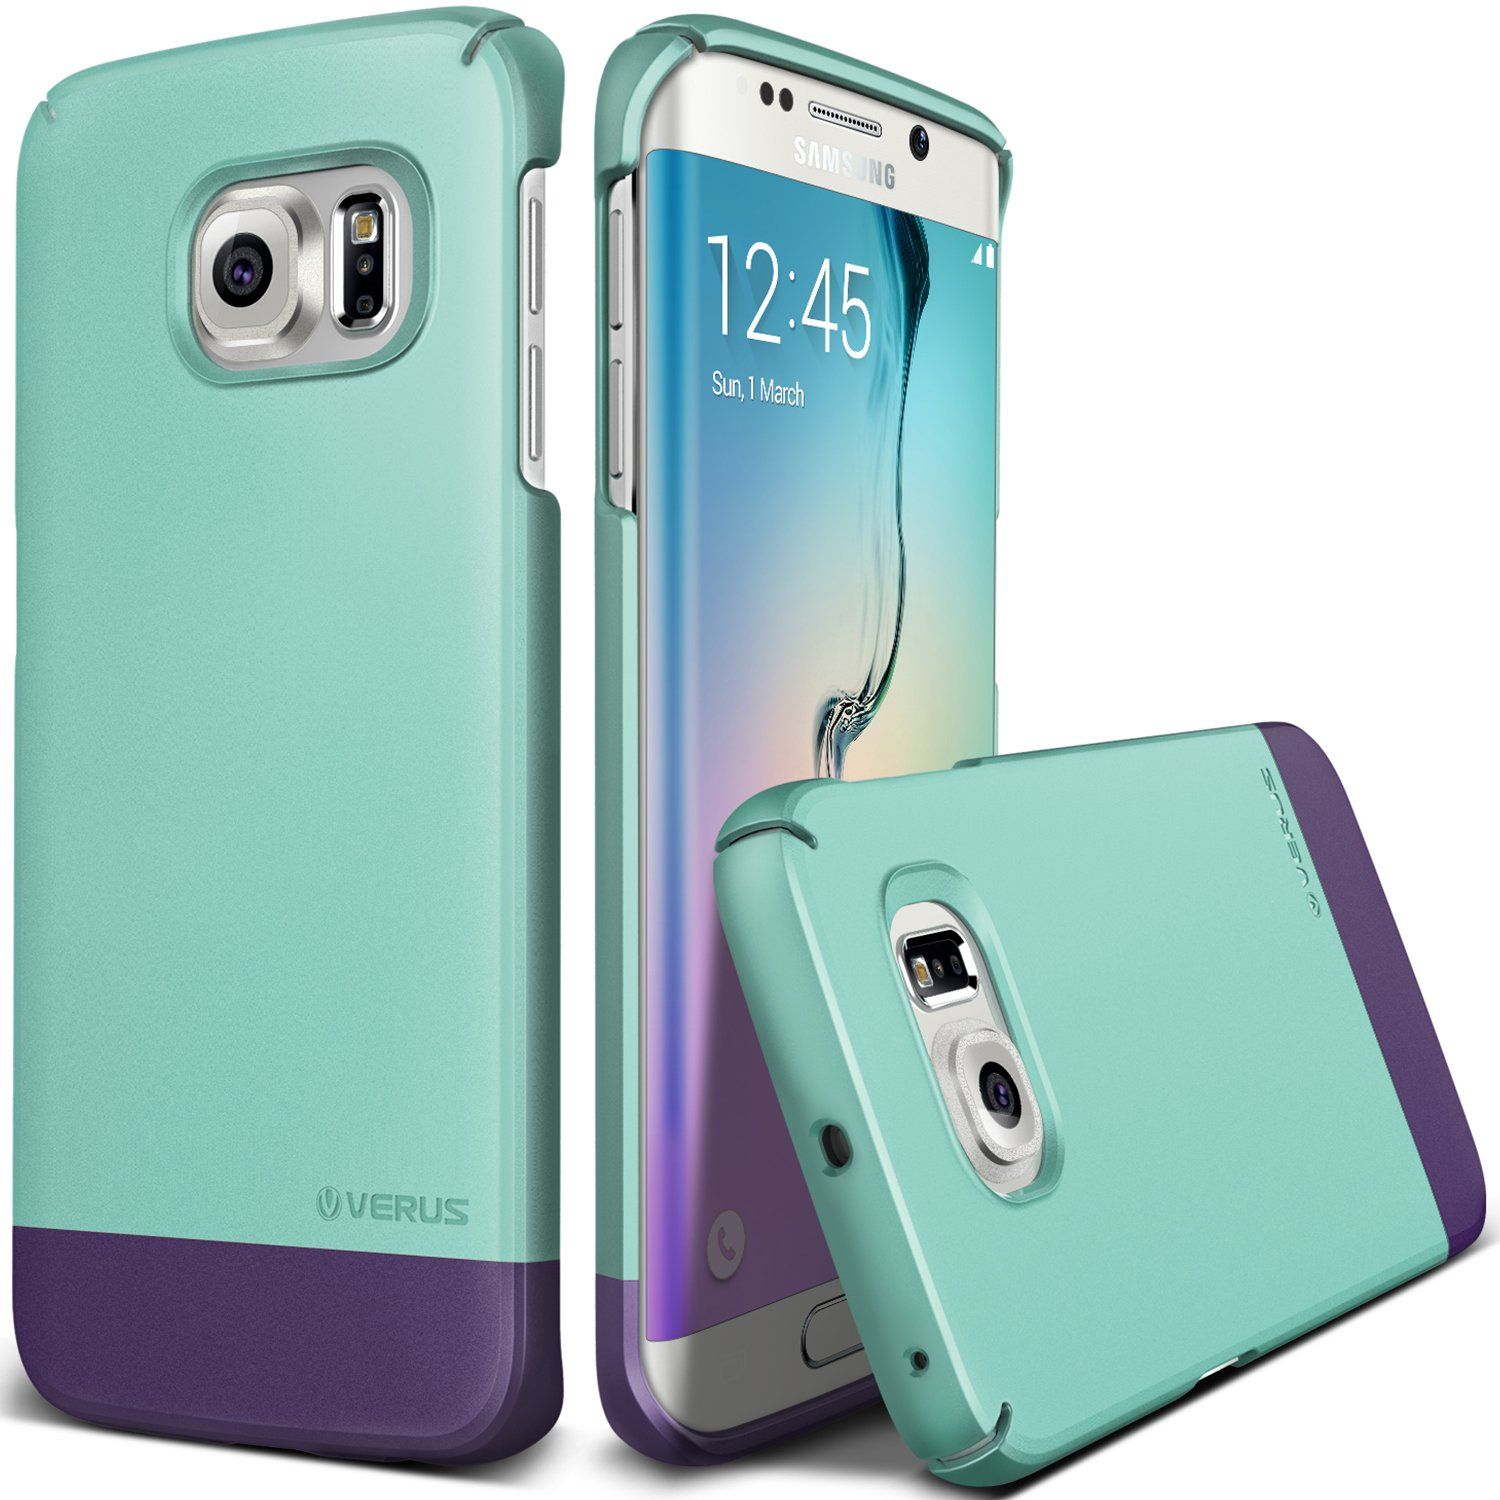 finest selection 31edc 9c3d1 Amazon.com: Galaxy S6 Edge Case, Verus [Two Tone Slide] Samsung ...